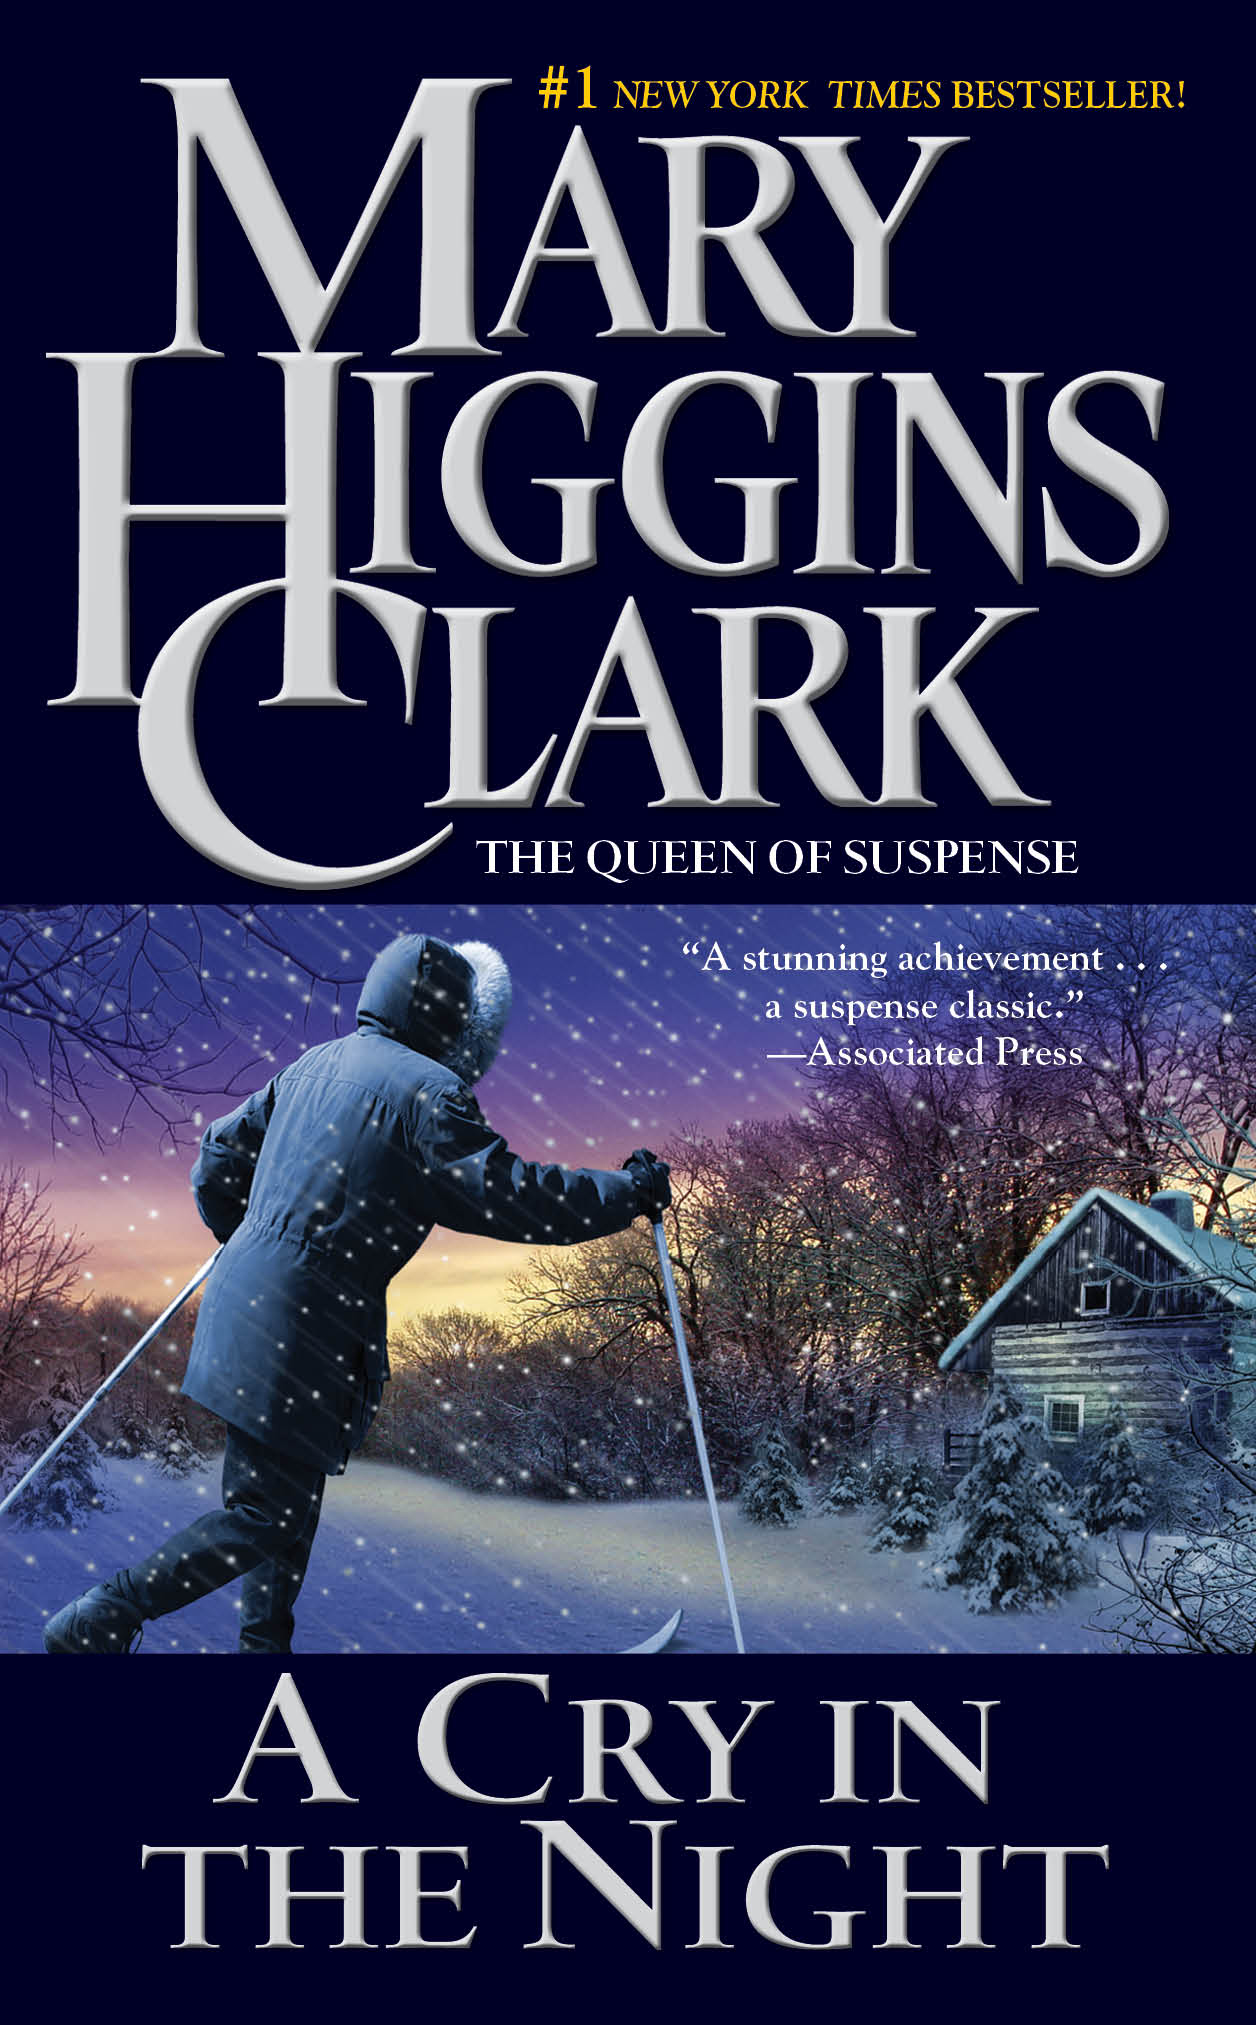 an analysis of mary higgins clarks novel a cry in the night Where are the children has 38,538 ratings and 981   mary higgins clark's second novel and her first suspense  this is a book you really can't read at night.